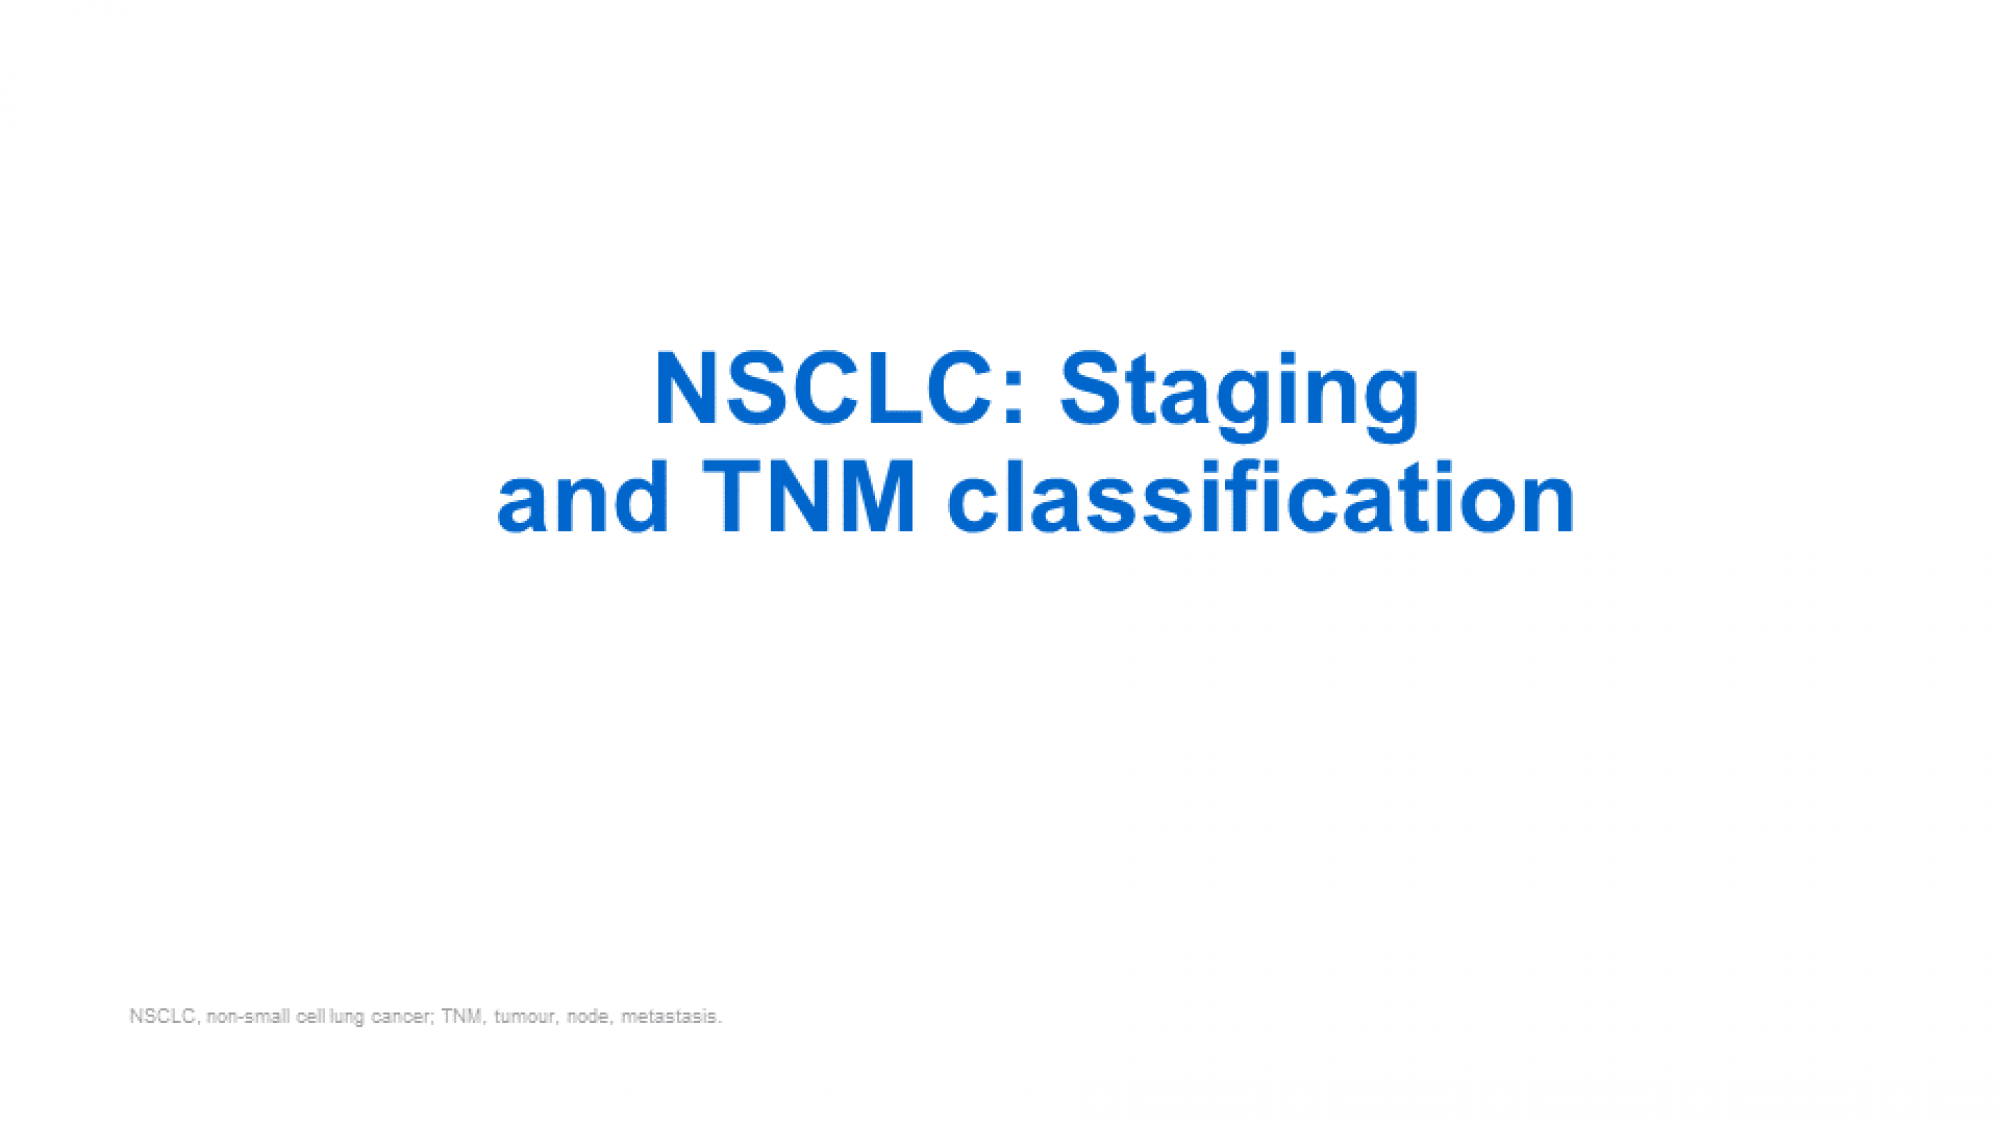 staging_classification_nsclc_slide_1